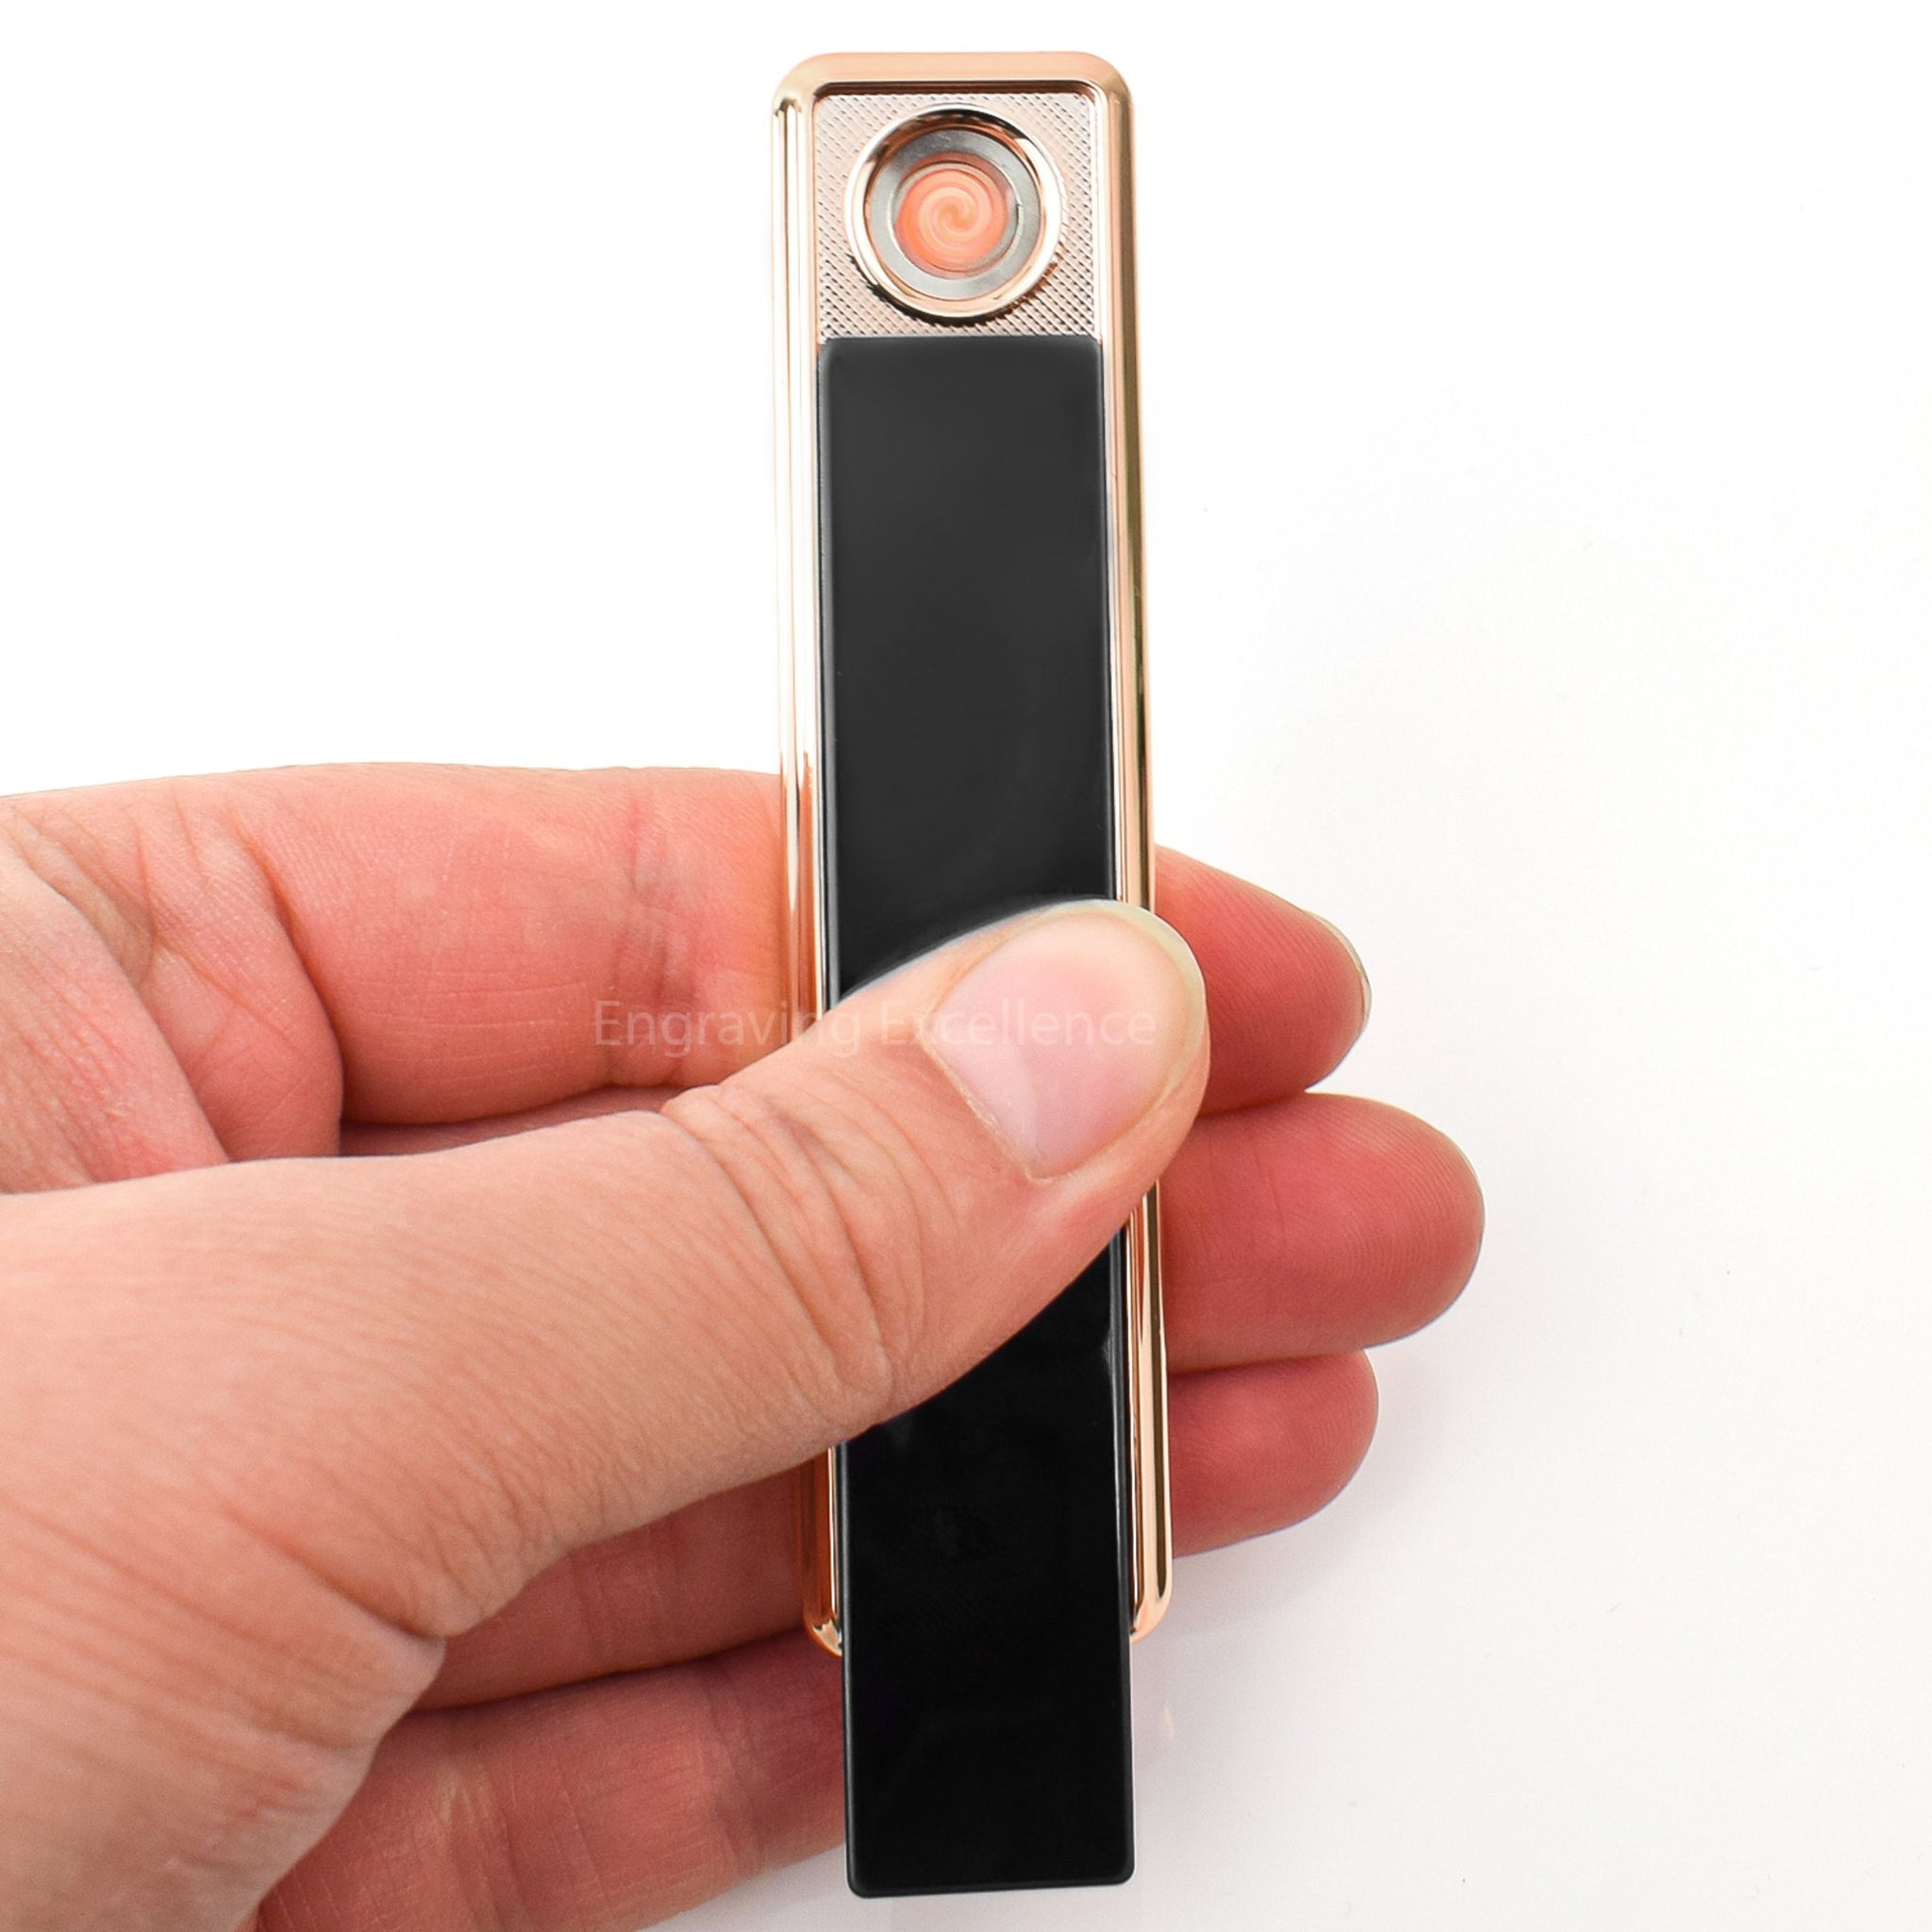 Slim Slide Action USB Lighter - Black